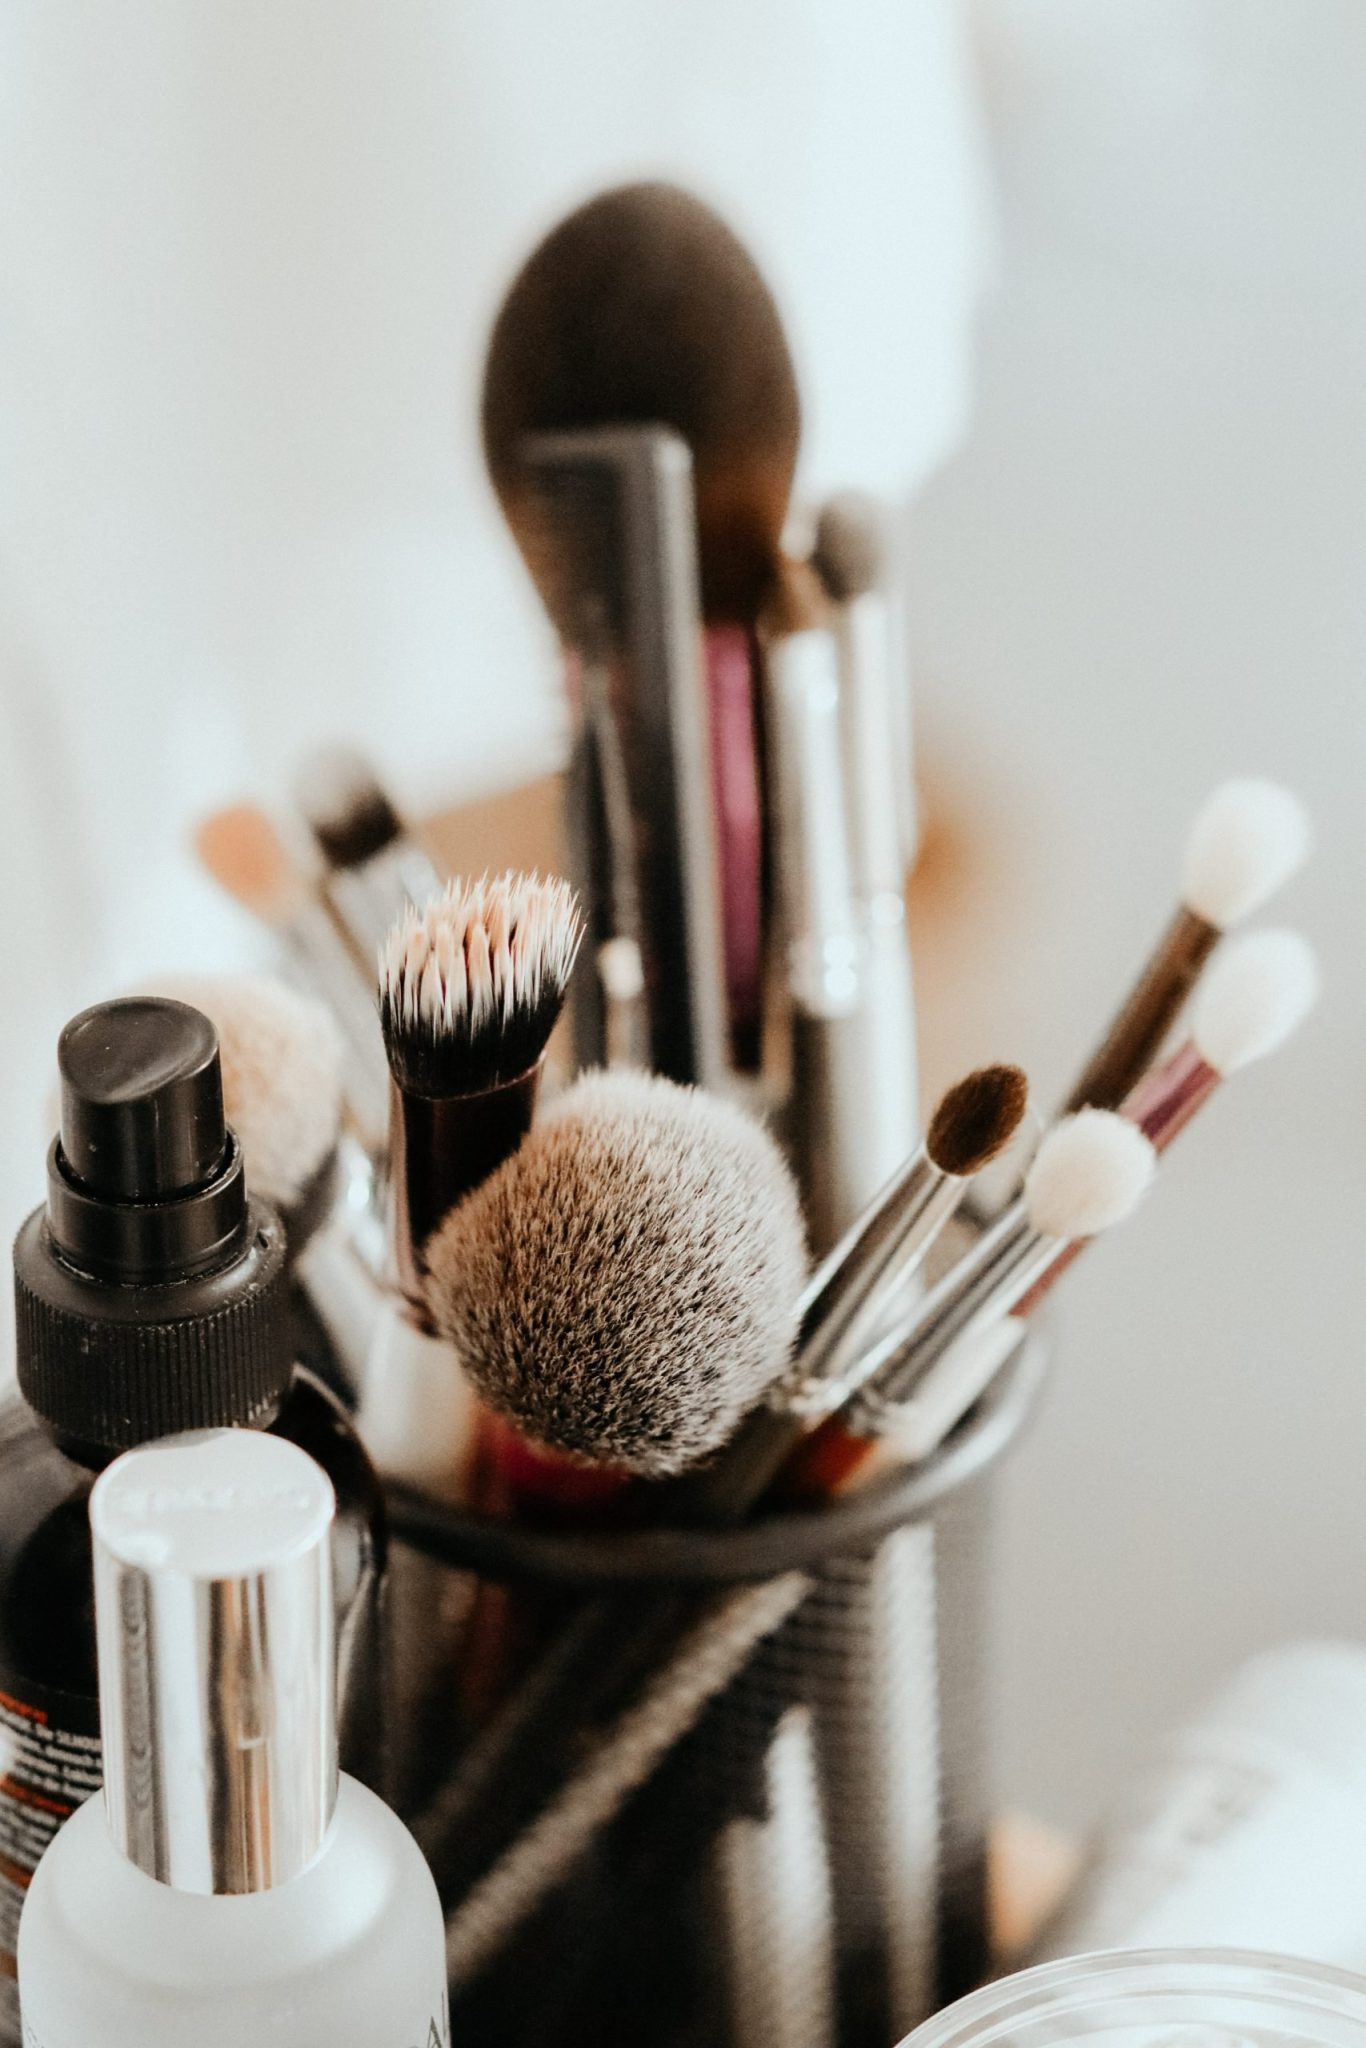 A picture of makeup brushes, which could be used by Ajay during his L'Oreal internship